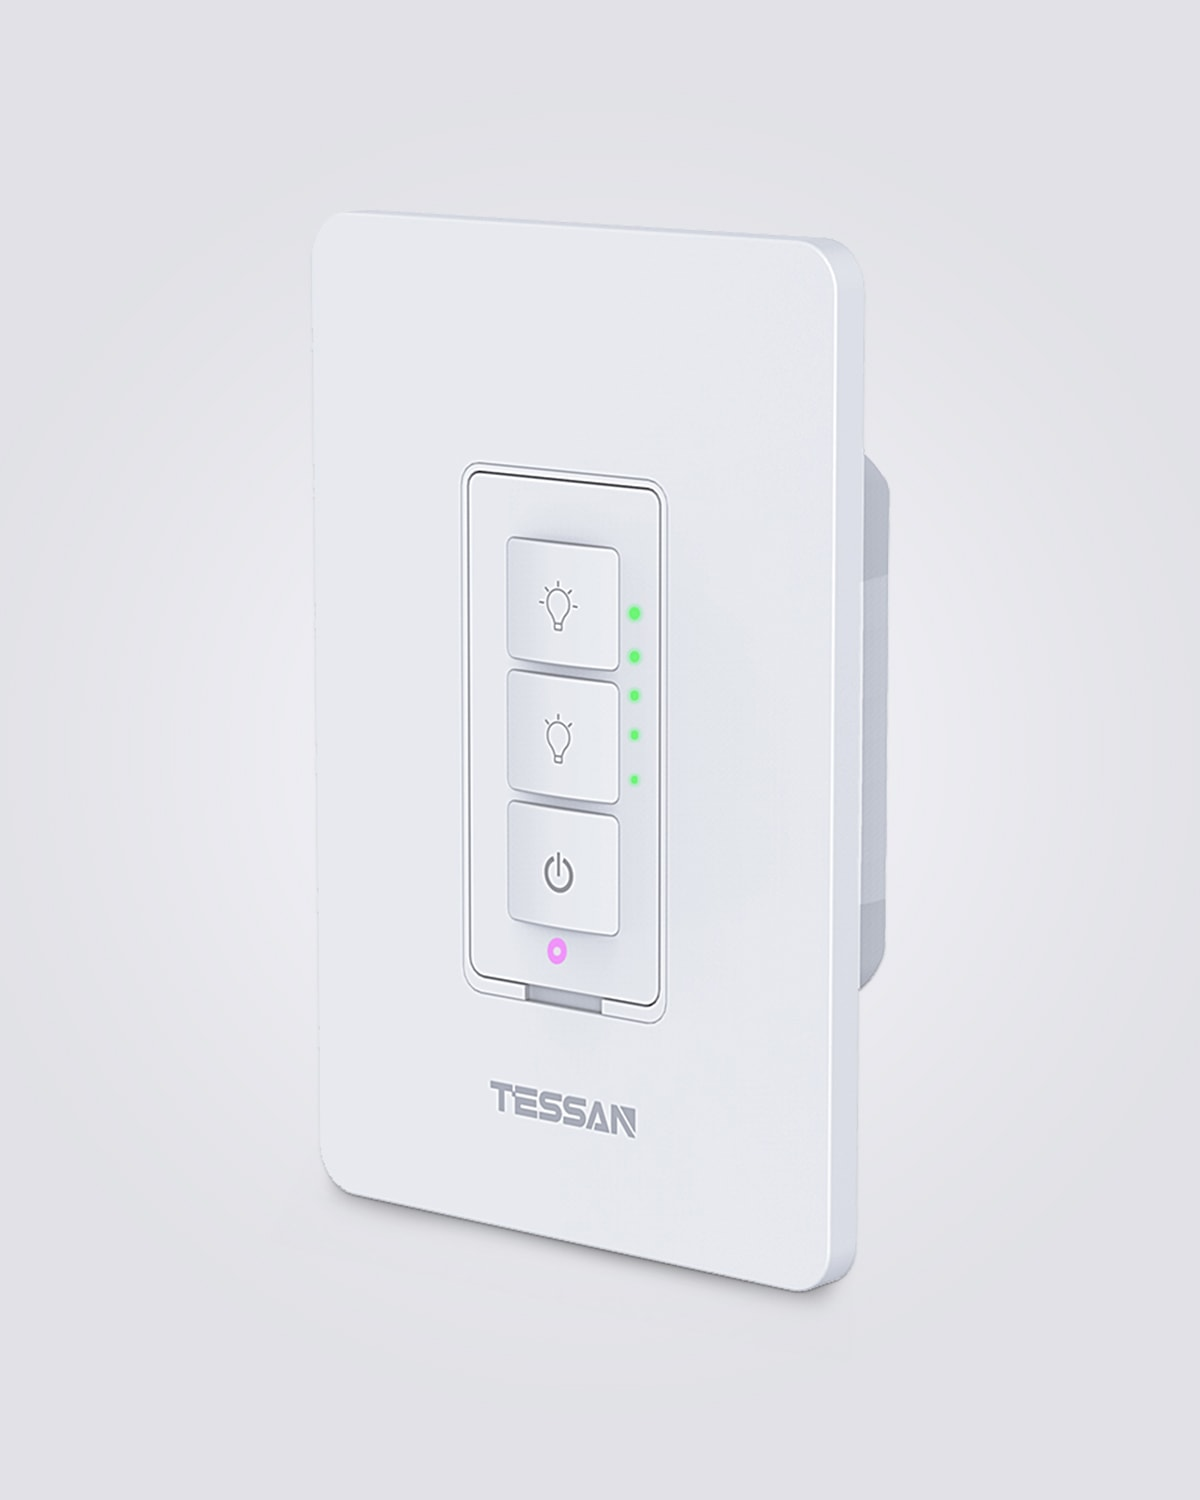 Smart Dimmer Switch for Dimmable LED Lights, Compatible with Alexa and Google Assistant, White